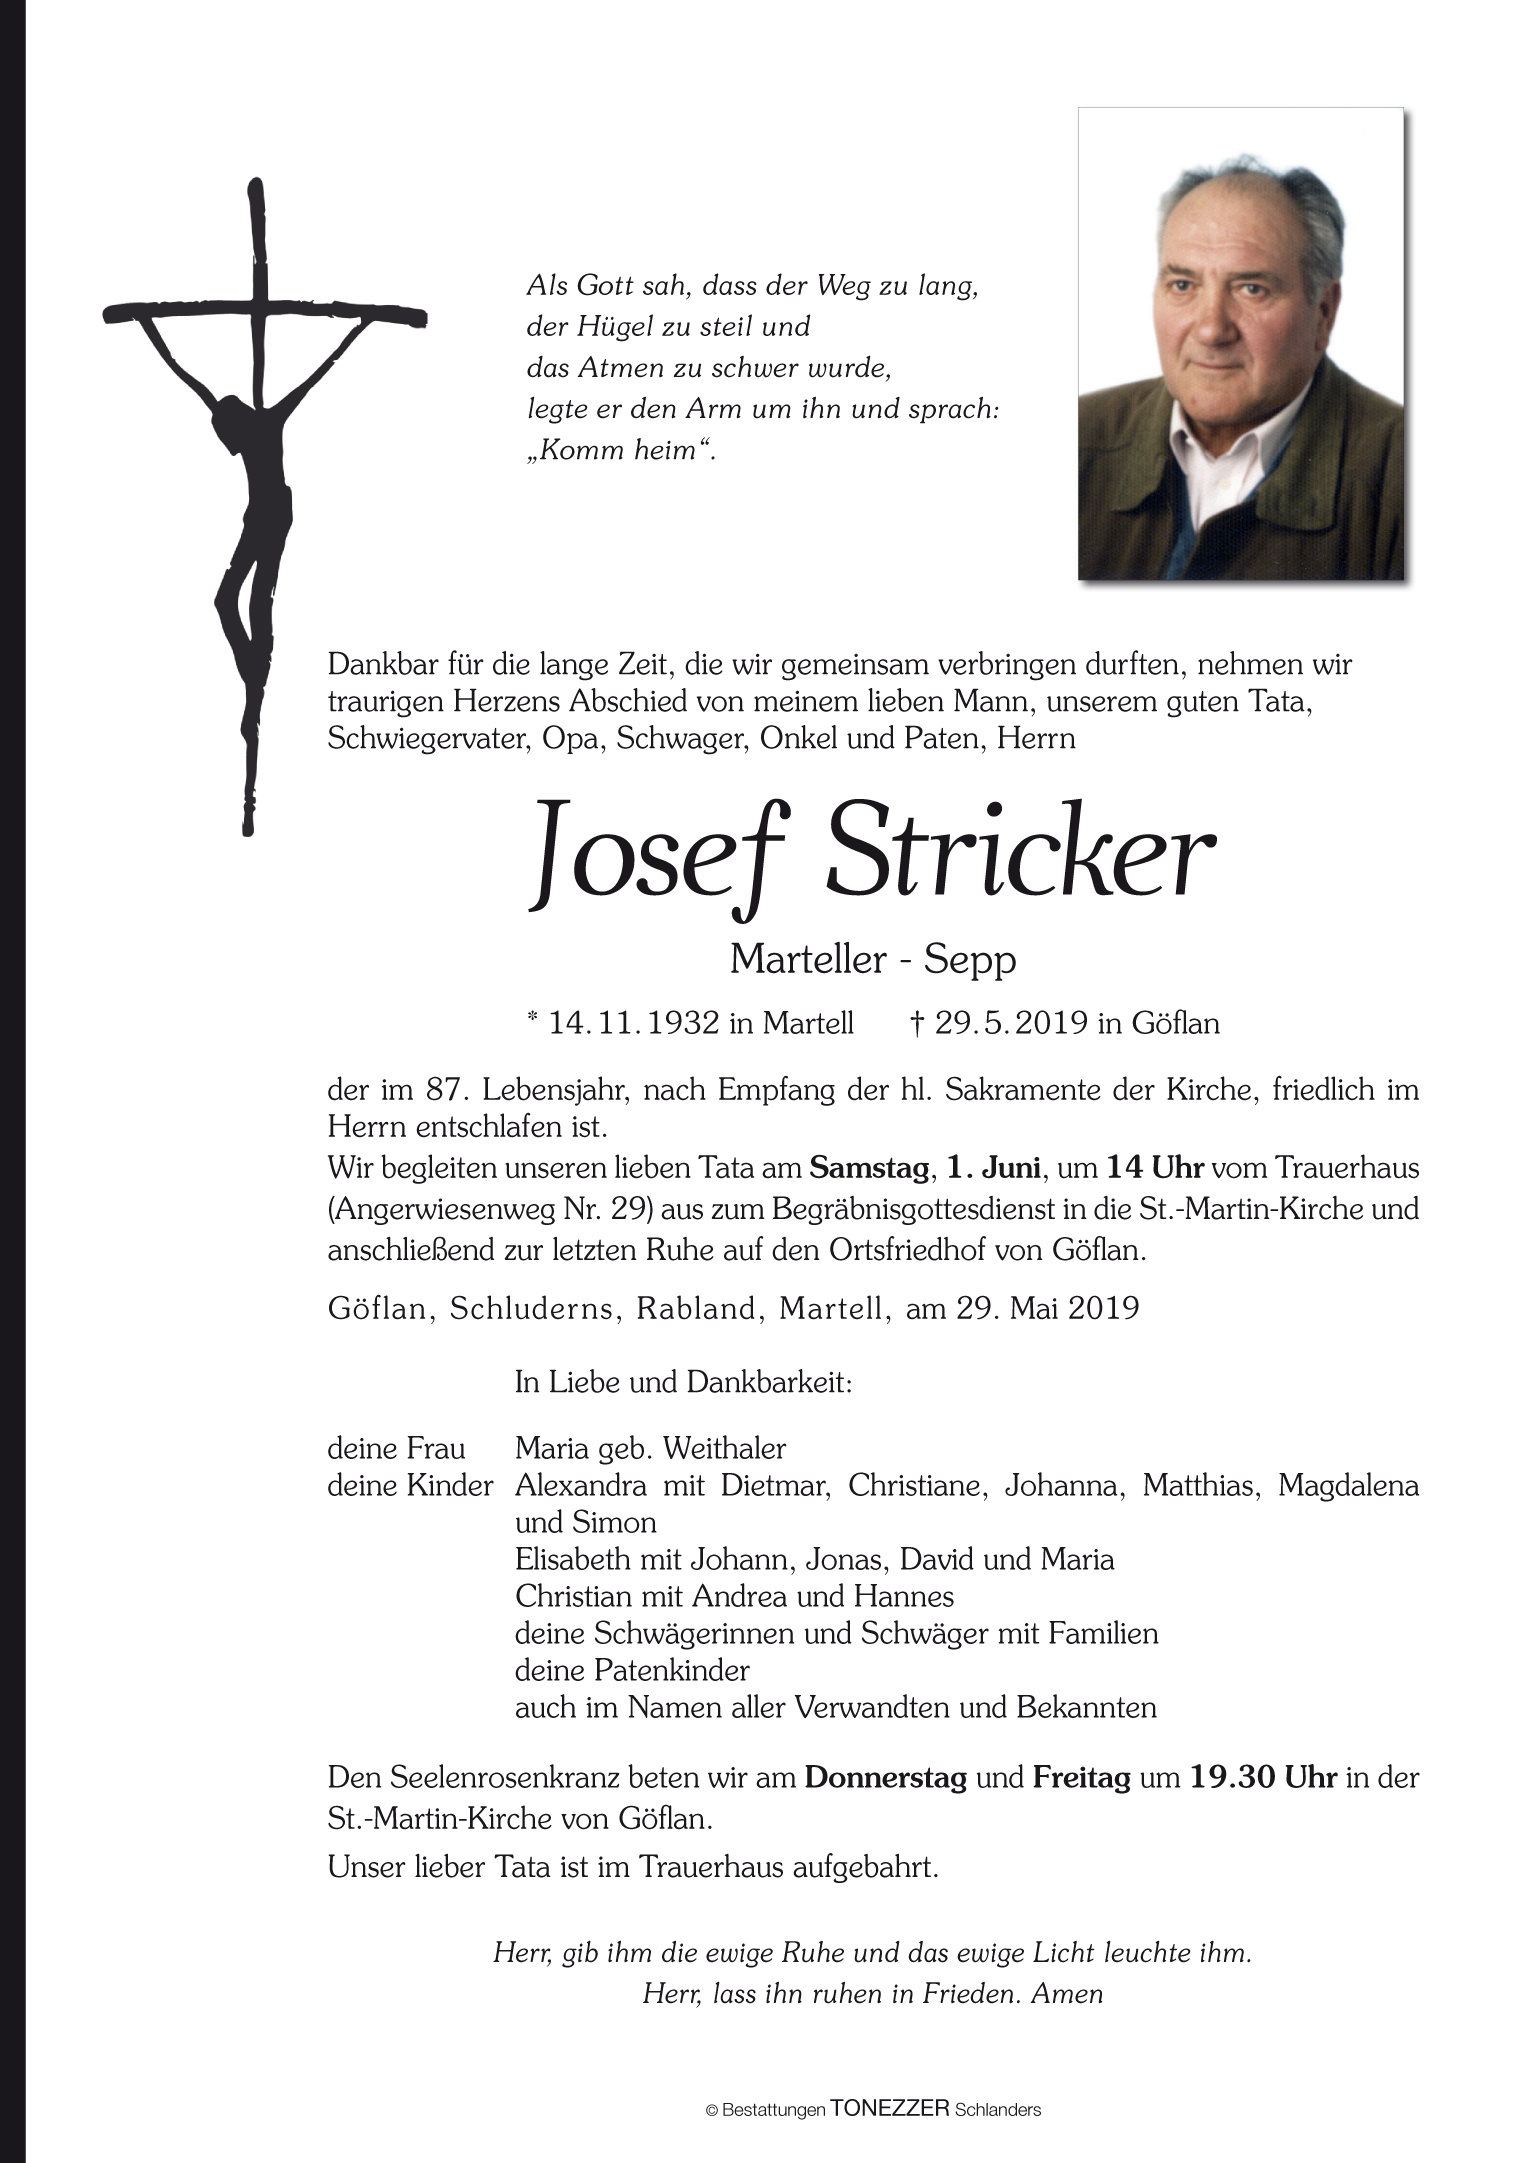 Josef Stricker